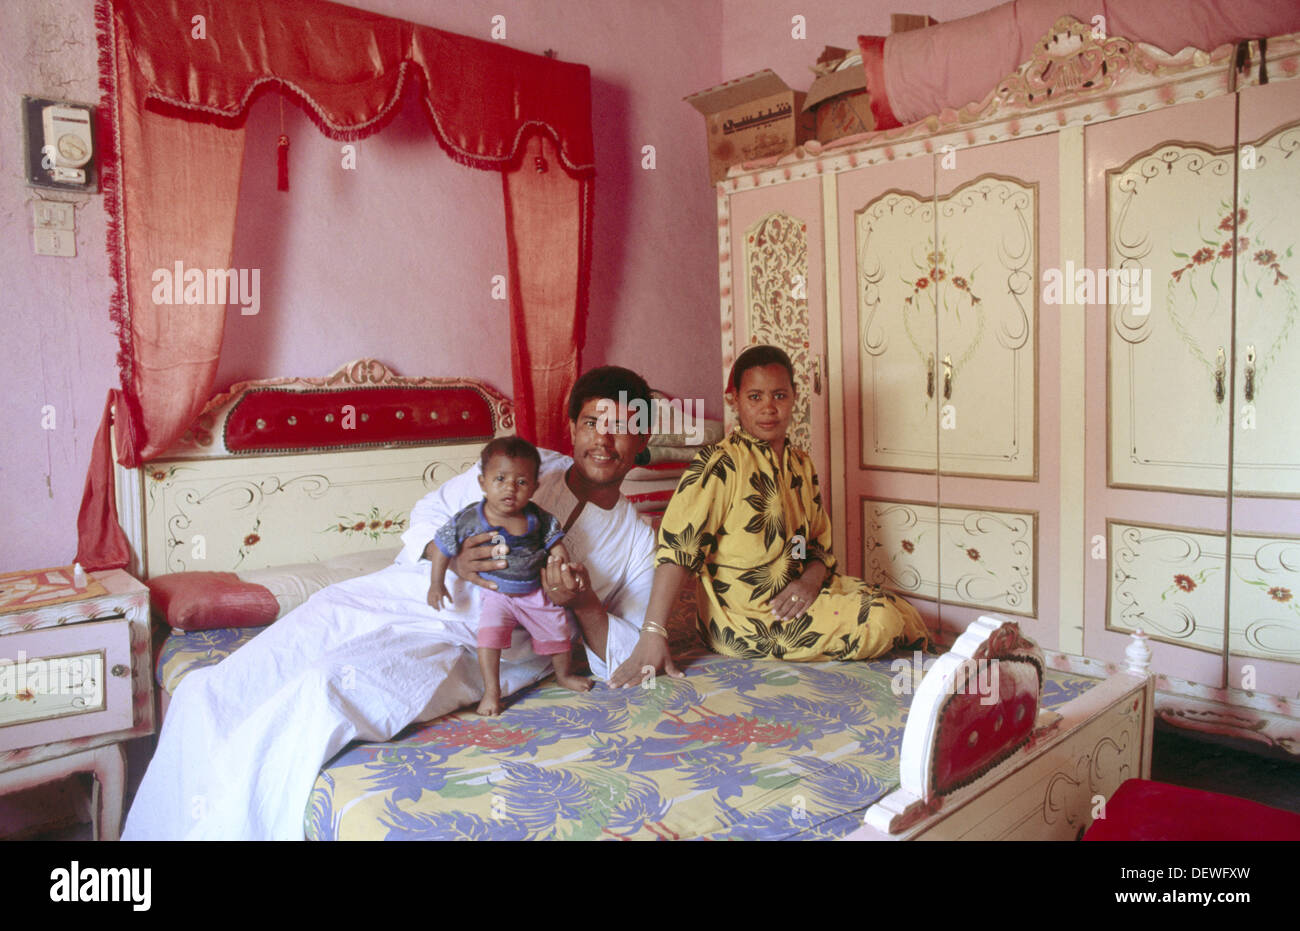 Family. King´s Valley. Egypt. - Stock Image